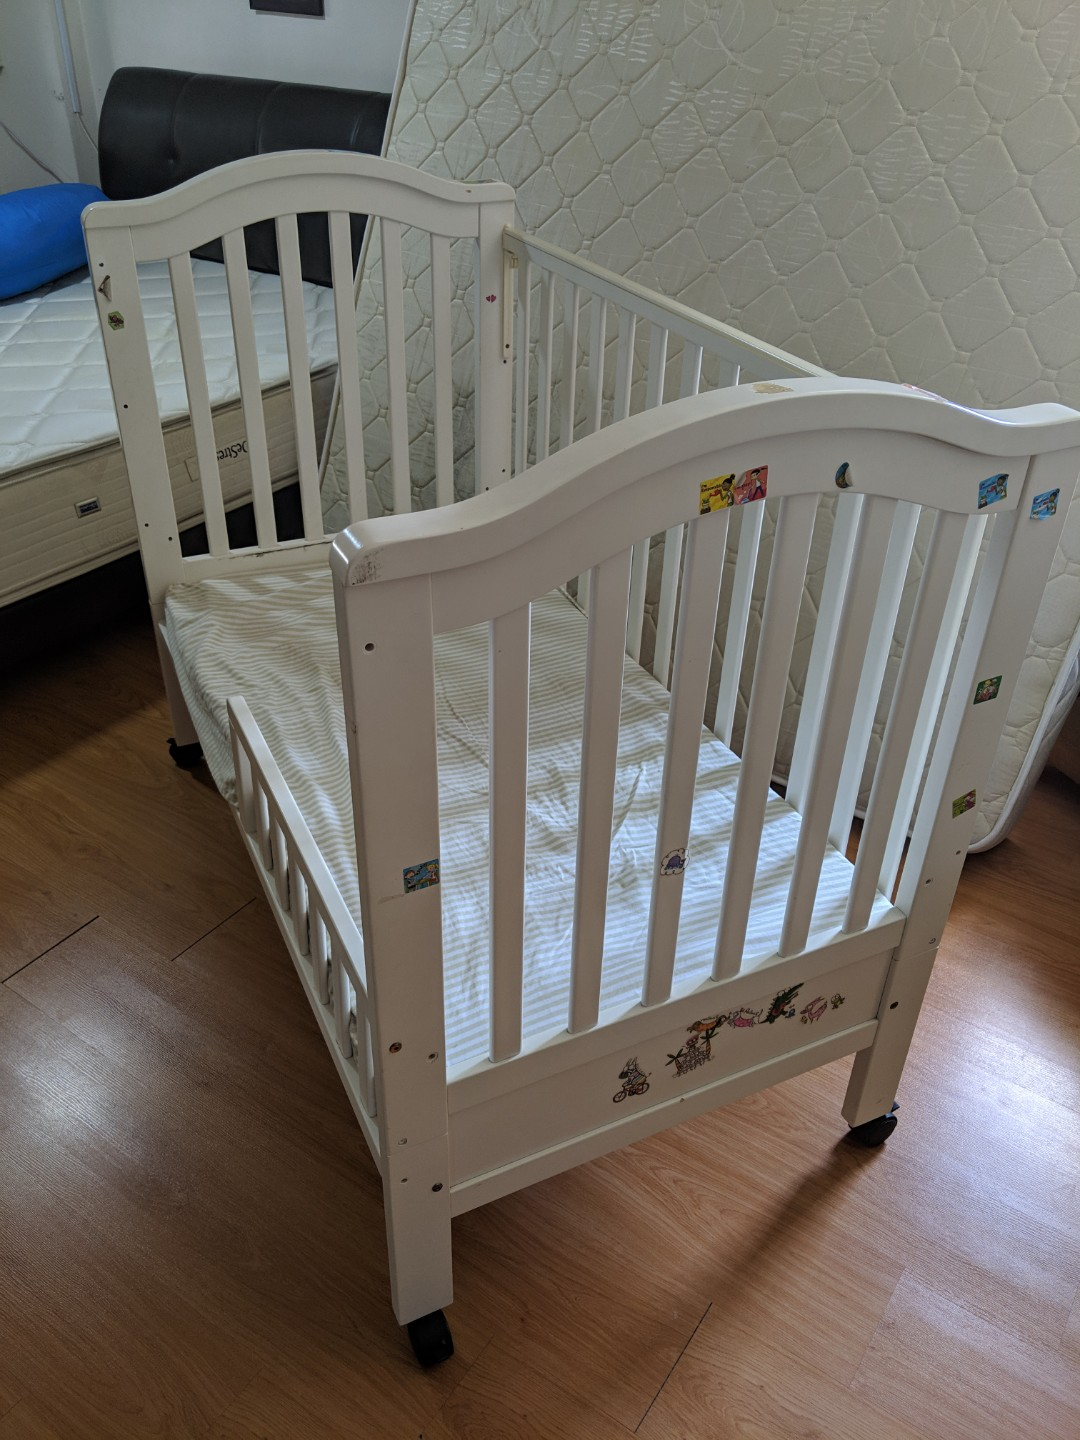 Slightly Used Baby Crib Babies Kids Cots Cribs On Carousell